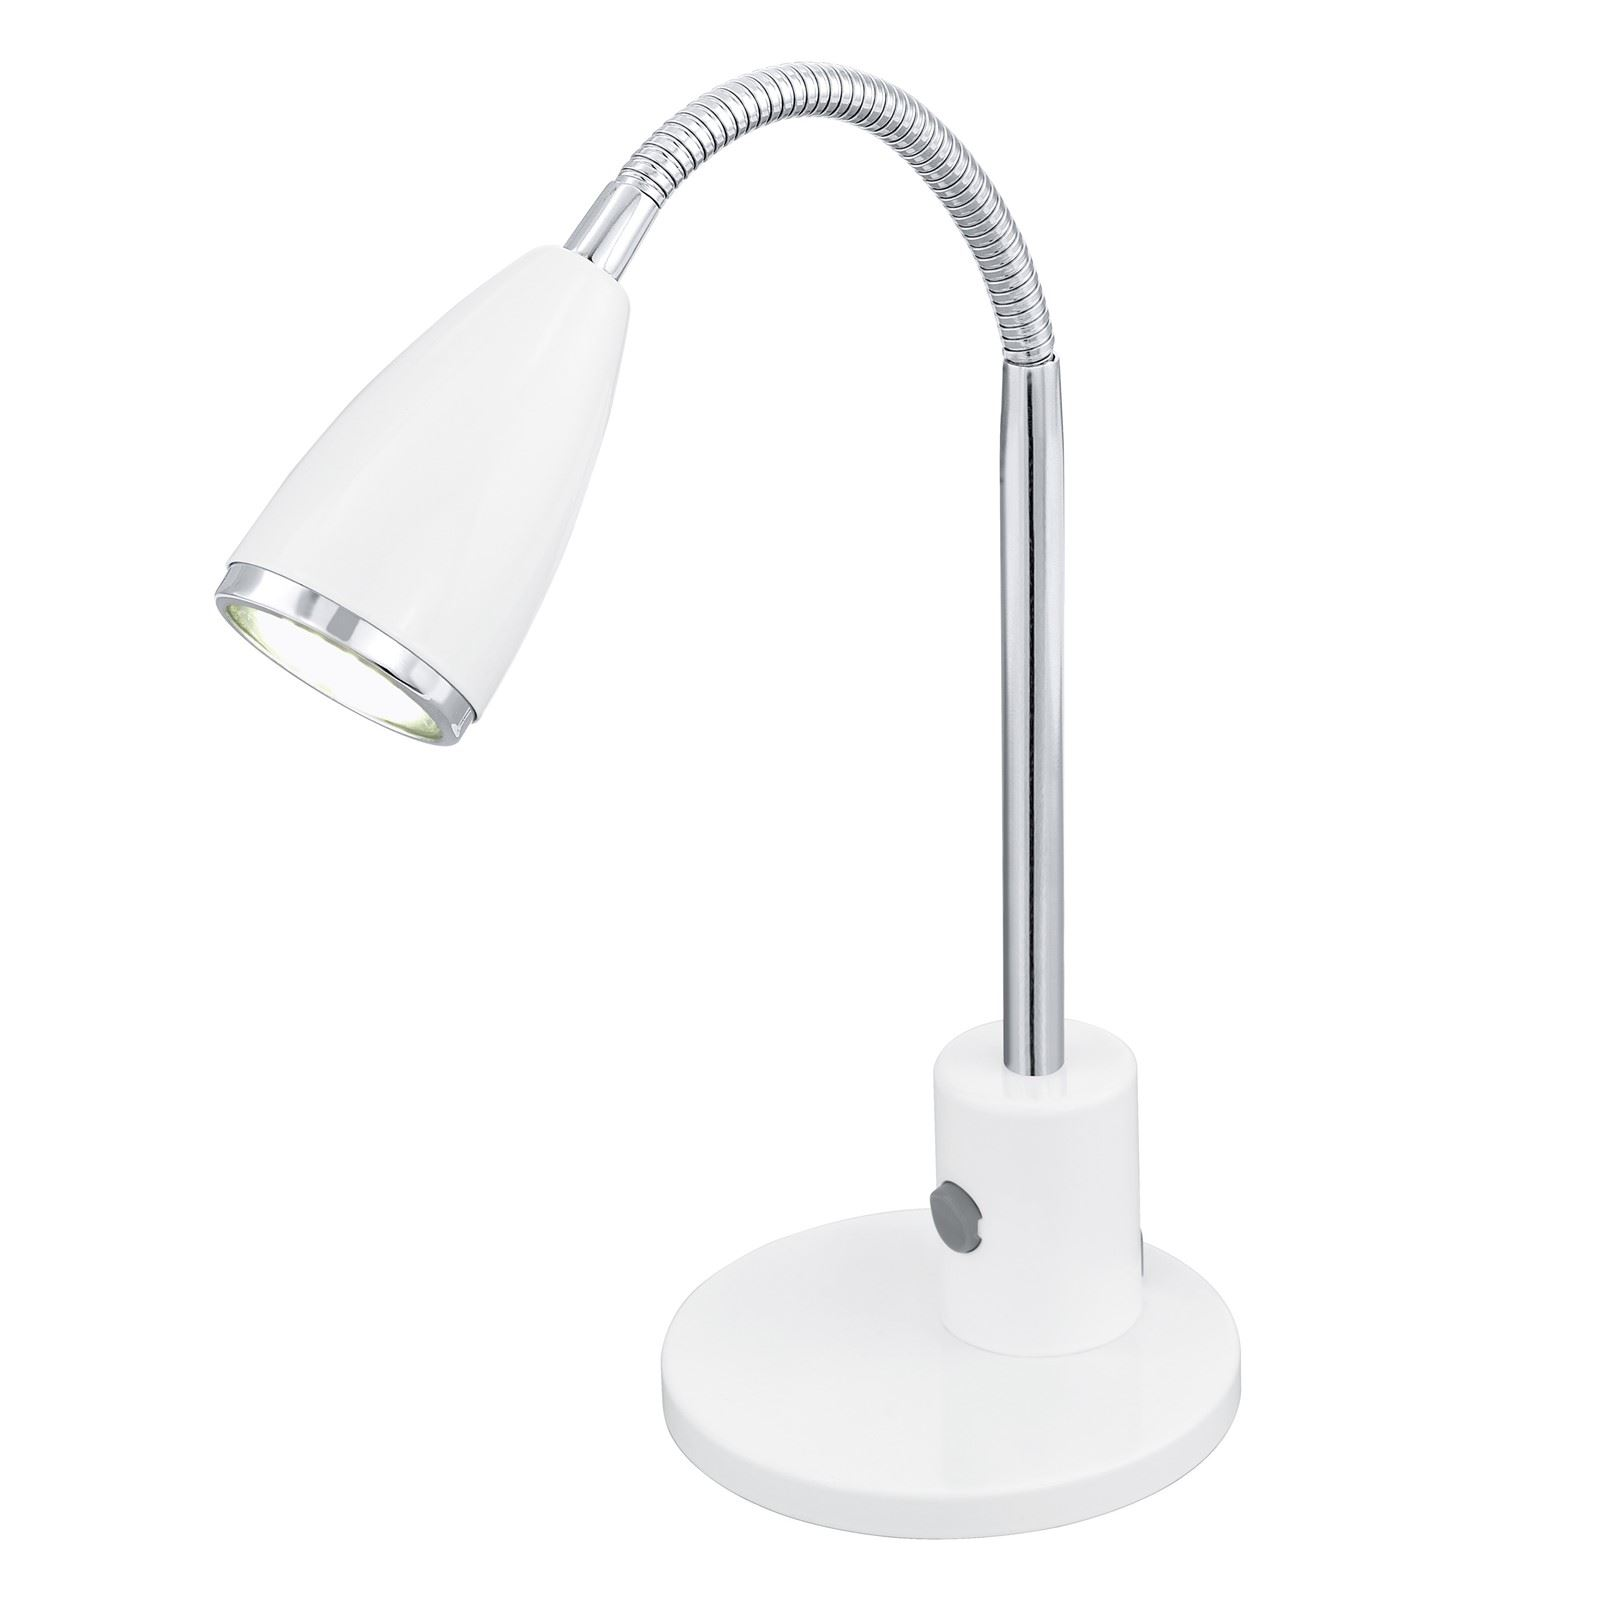 Fox Stylish Table Lamp 1 Light Gu10-Led With Rocker Switch